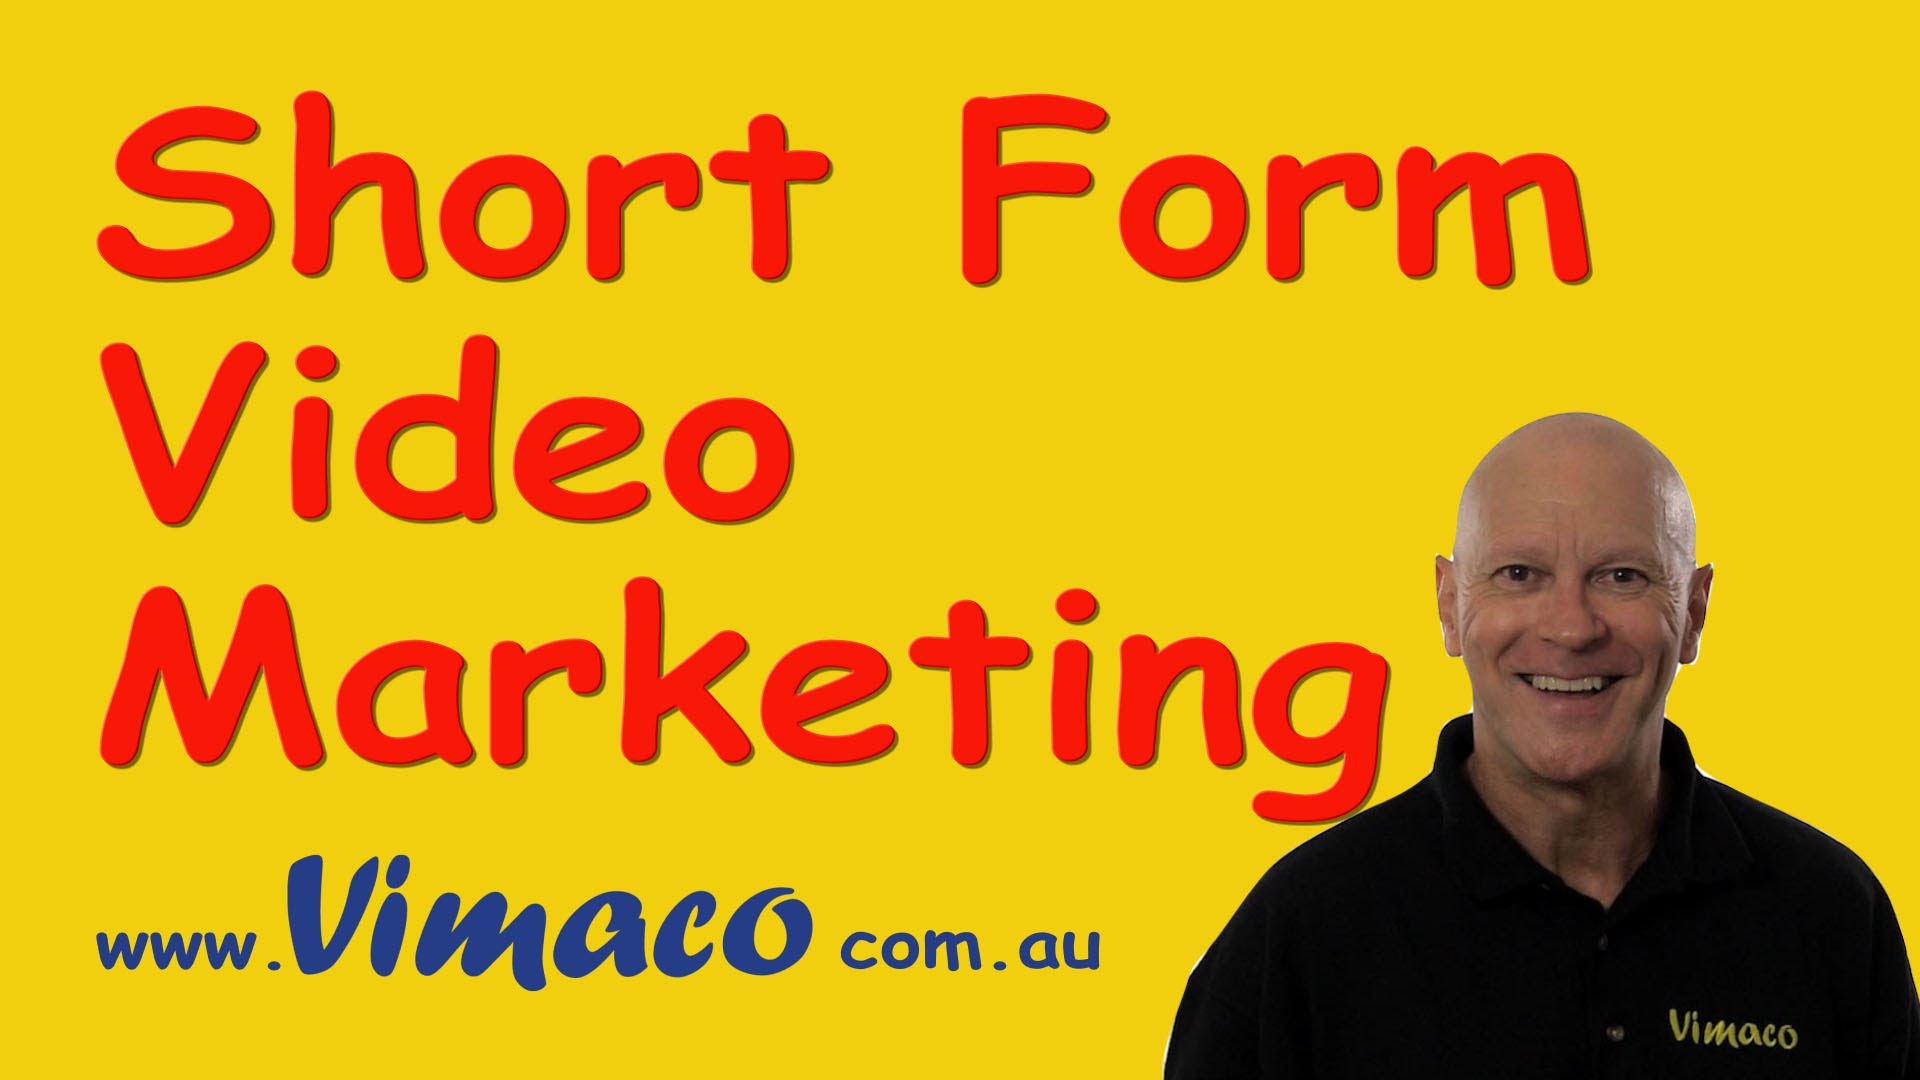 Short Form Video Marketing